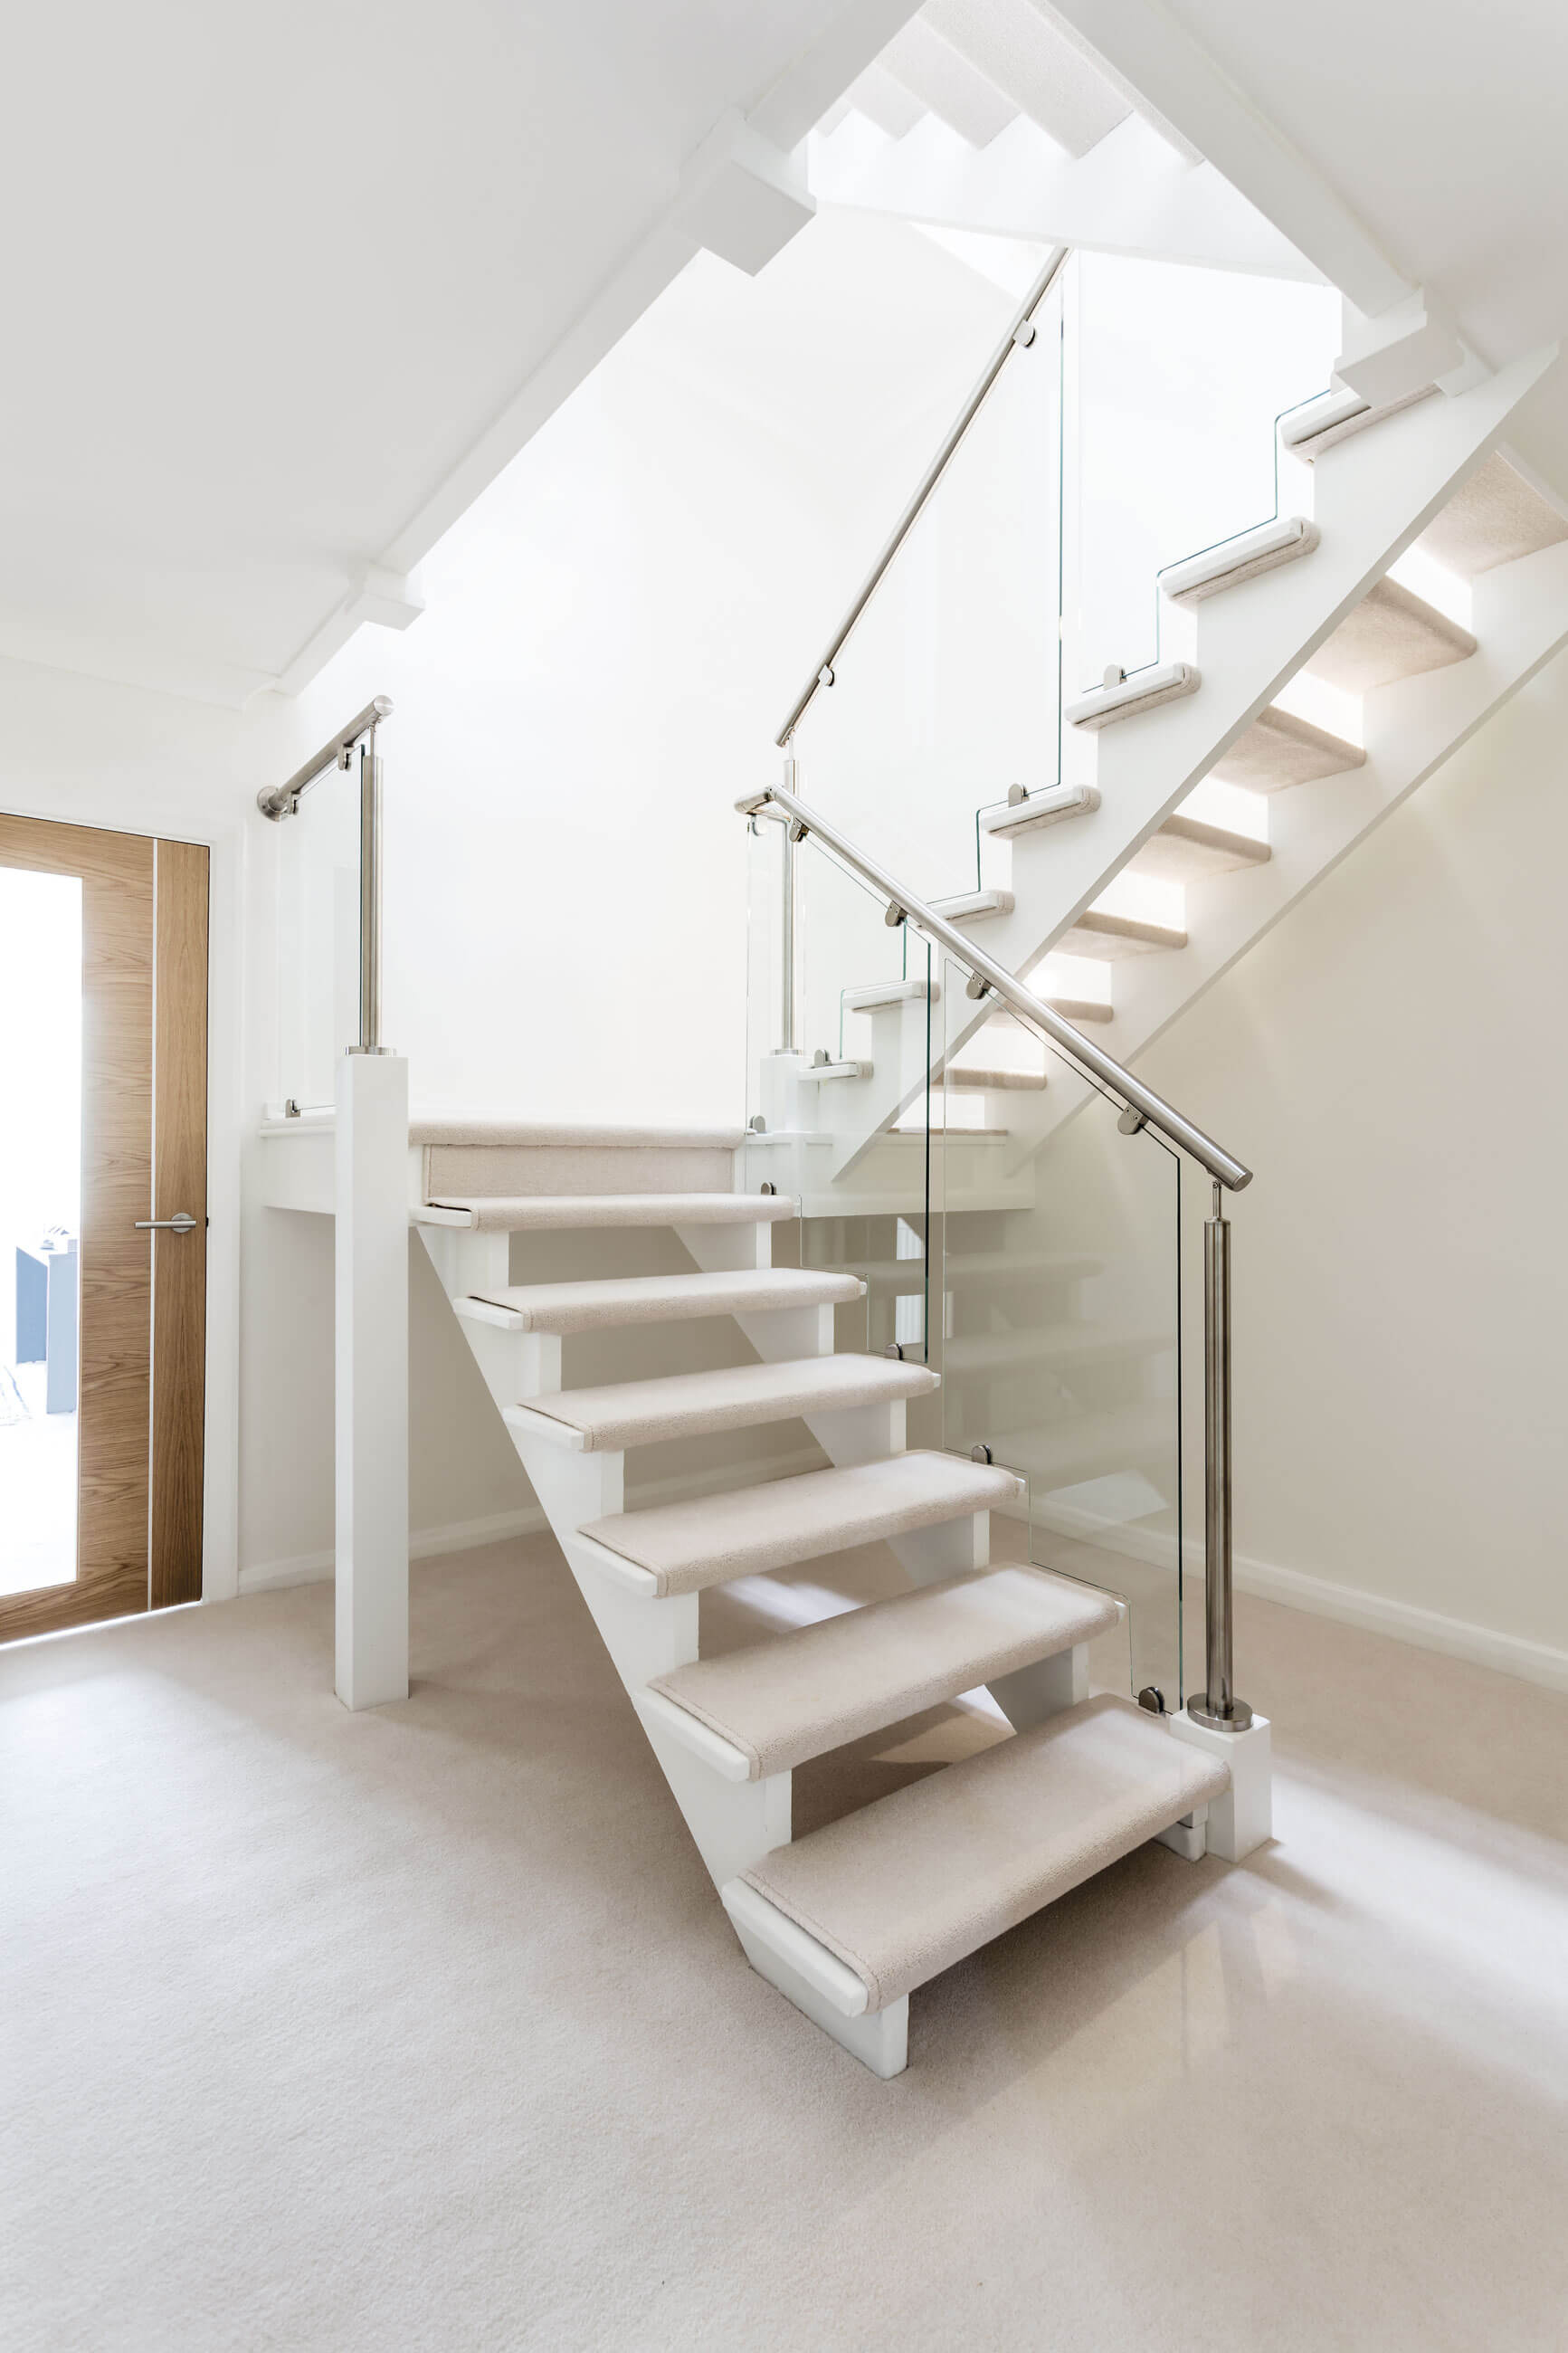 contemporary staircases to brighten your home neville johnson lighting is an essential element in the home to create more ambience when natural light fades integrate spotlighting into your home